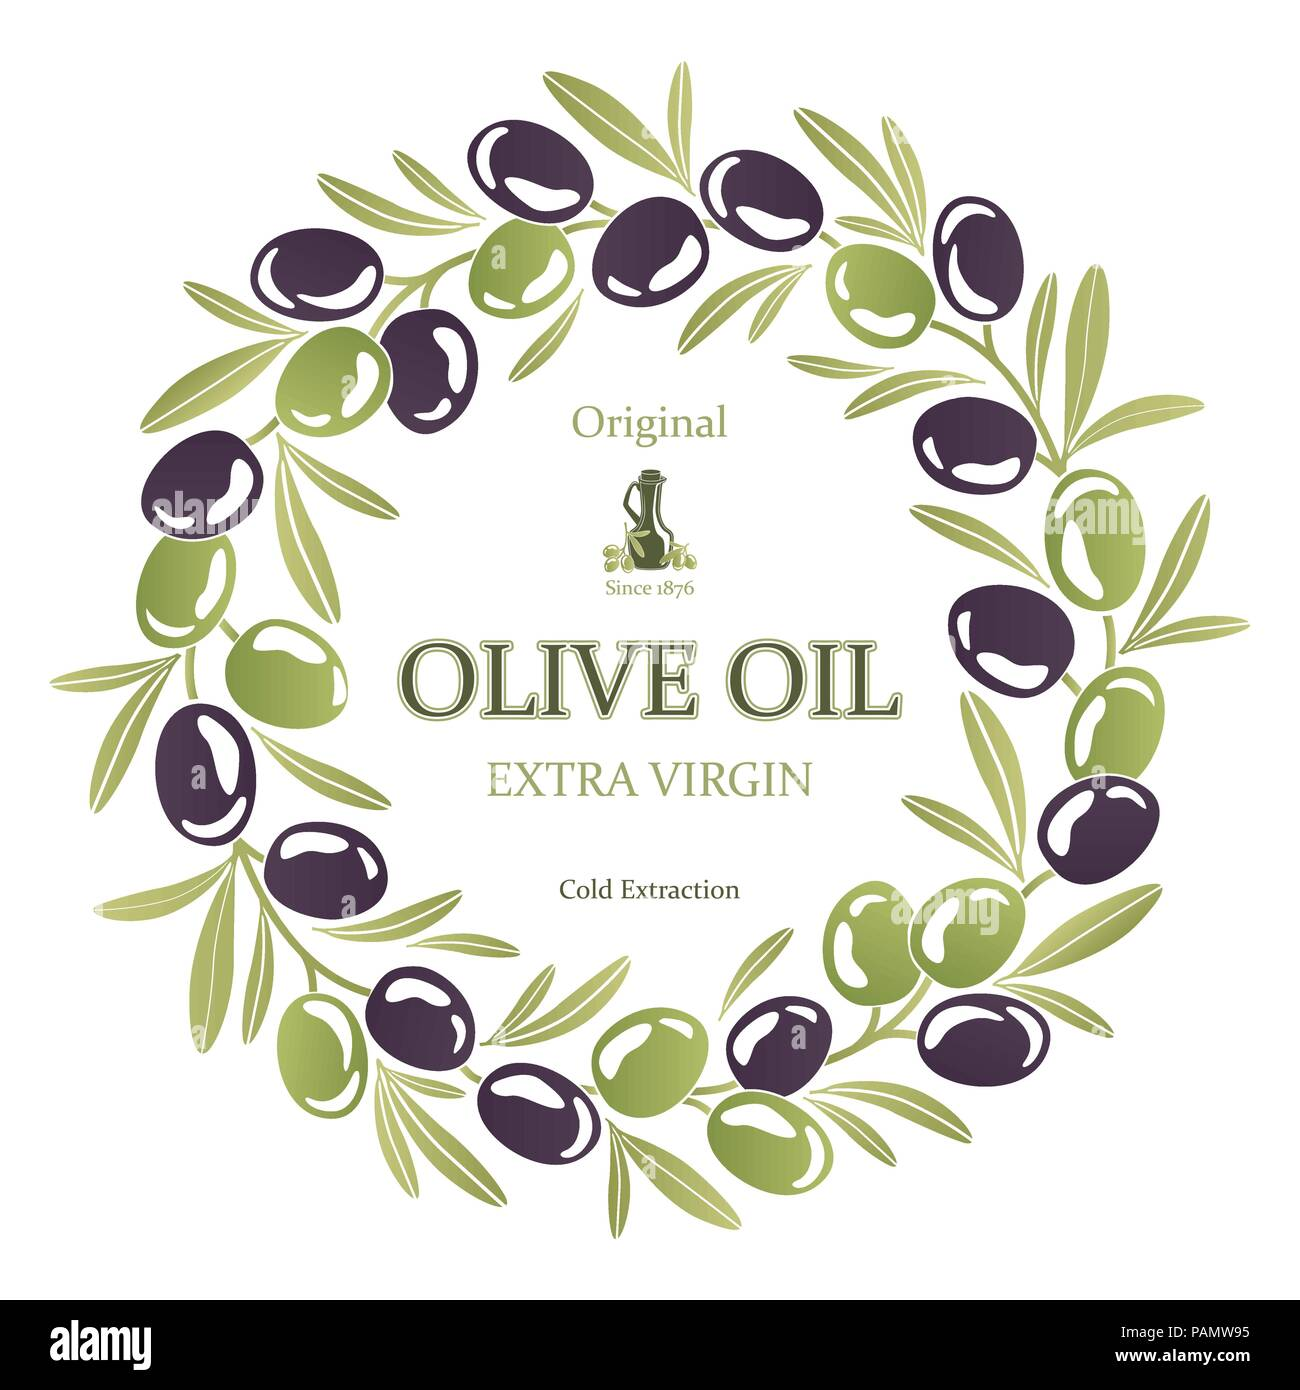 Label for olive oil wreath of black and green olives - Stock Image